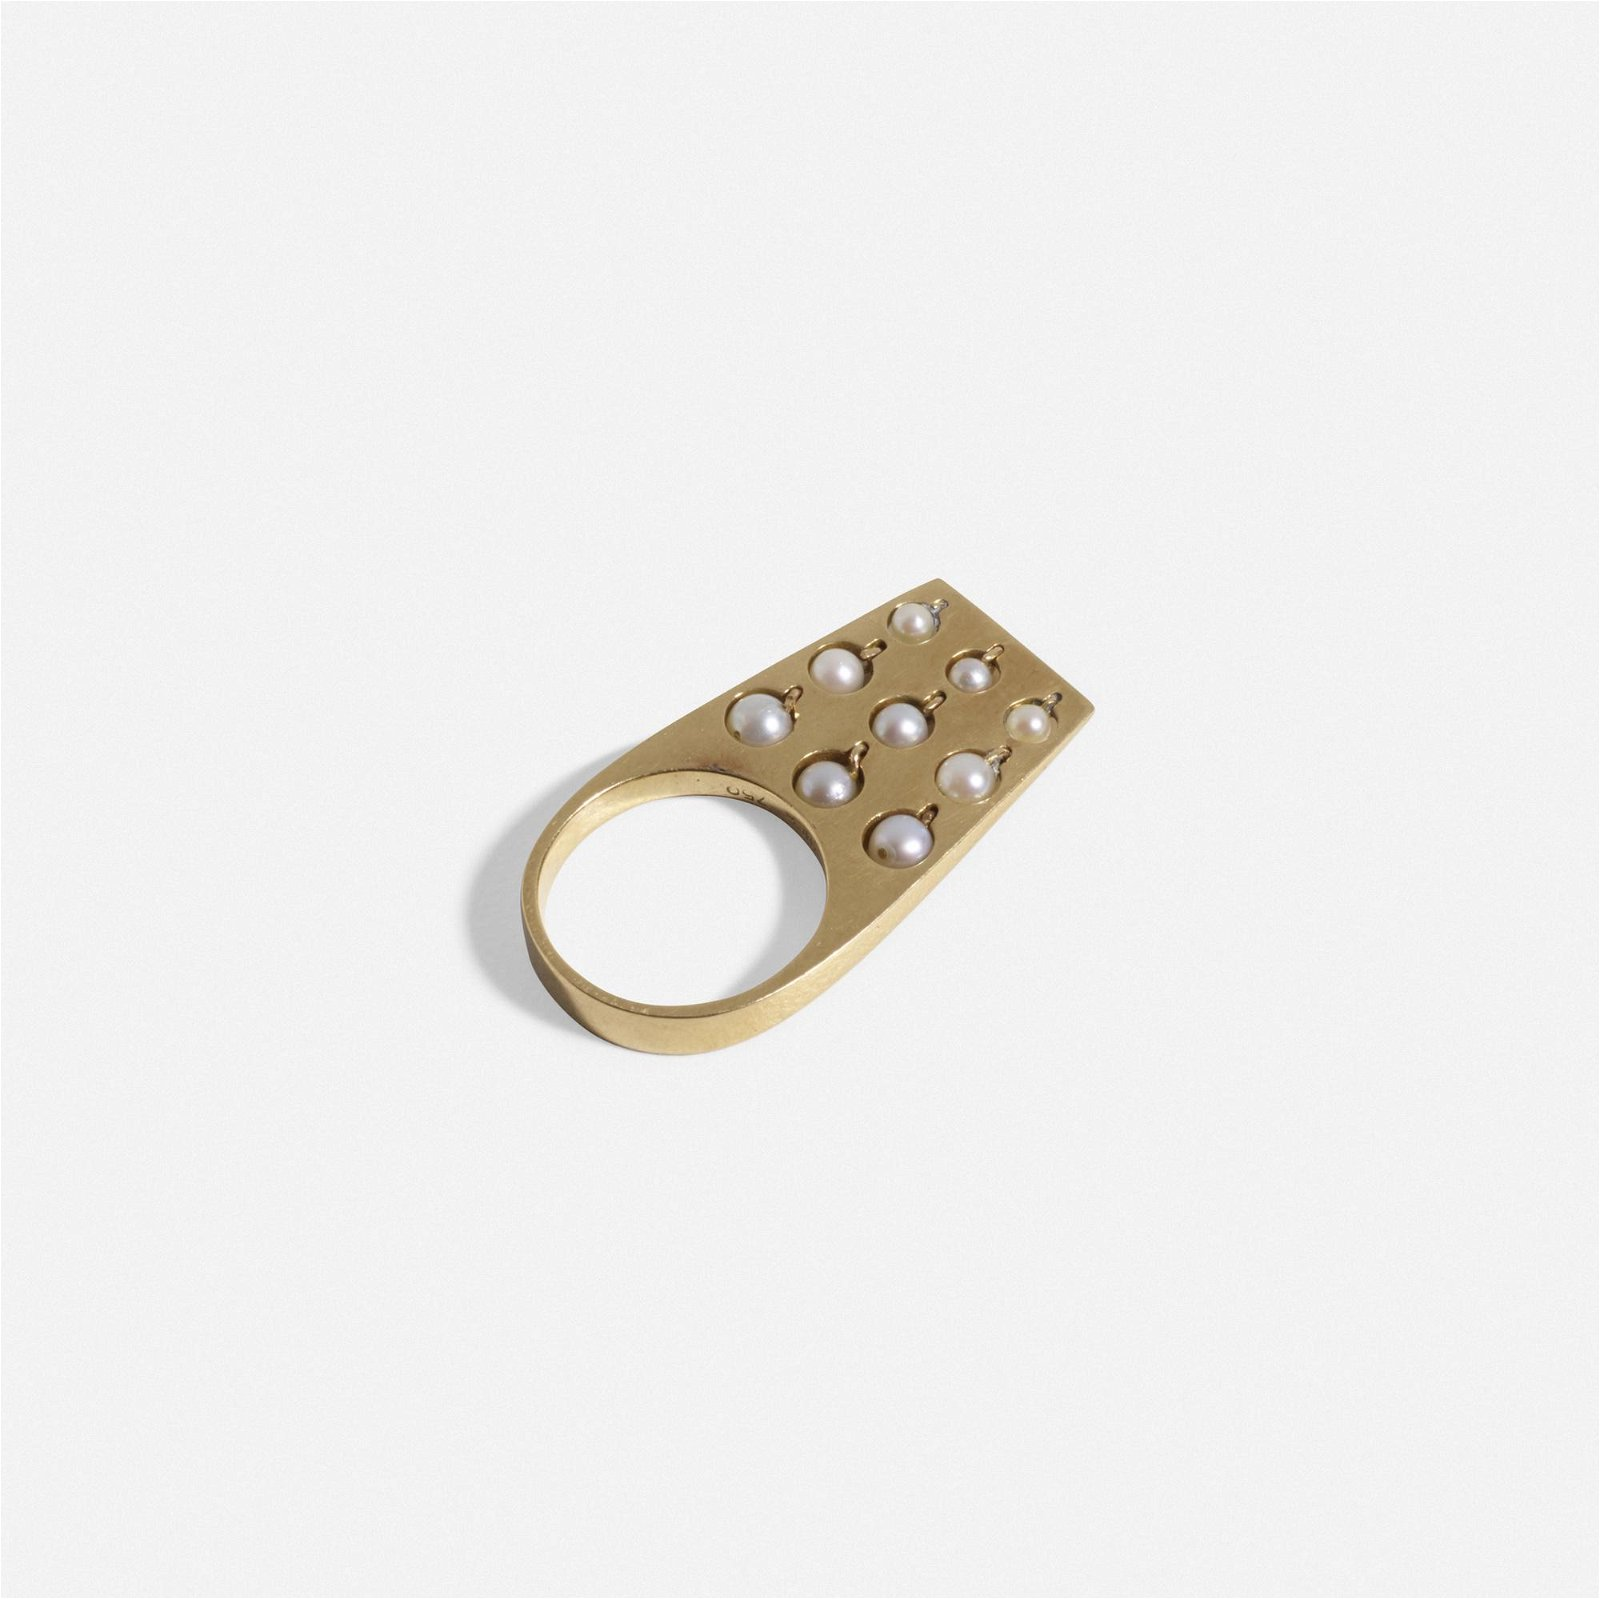 Bent Exner, kinetic ring